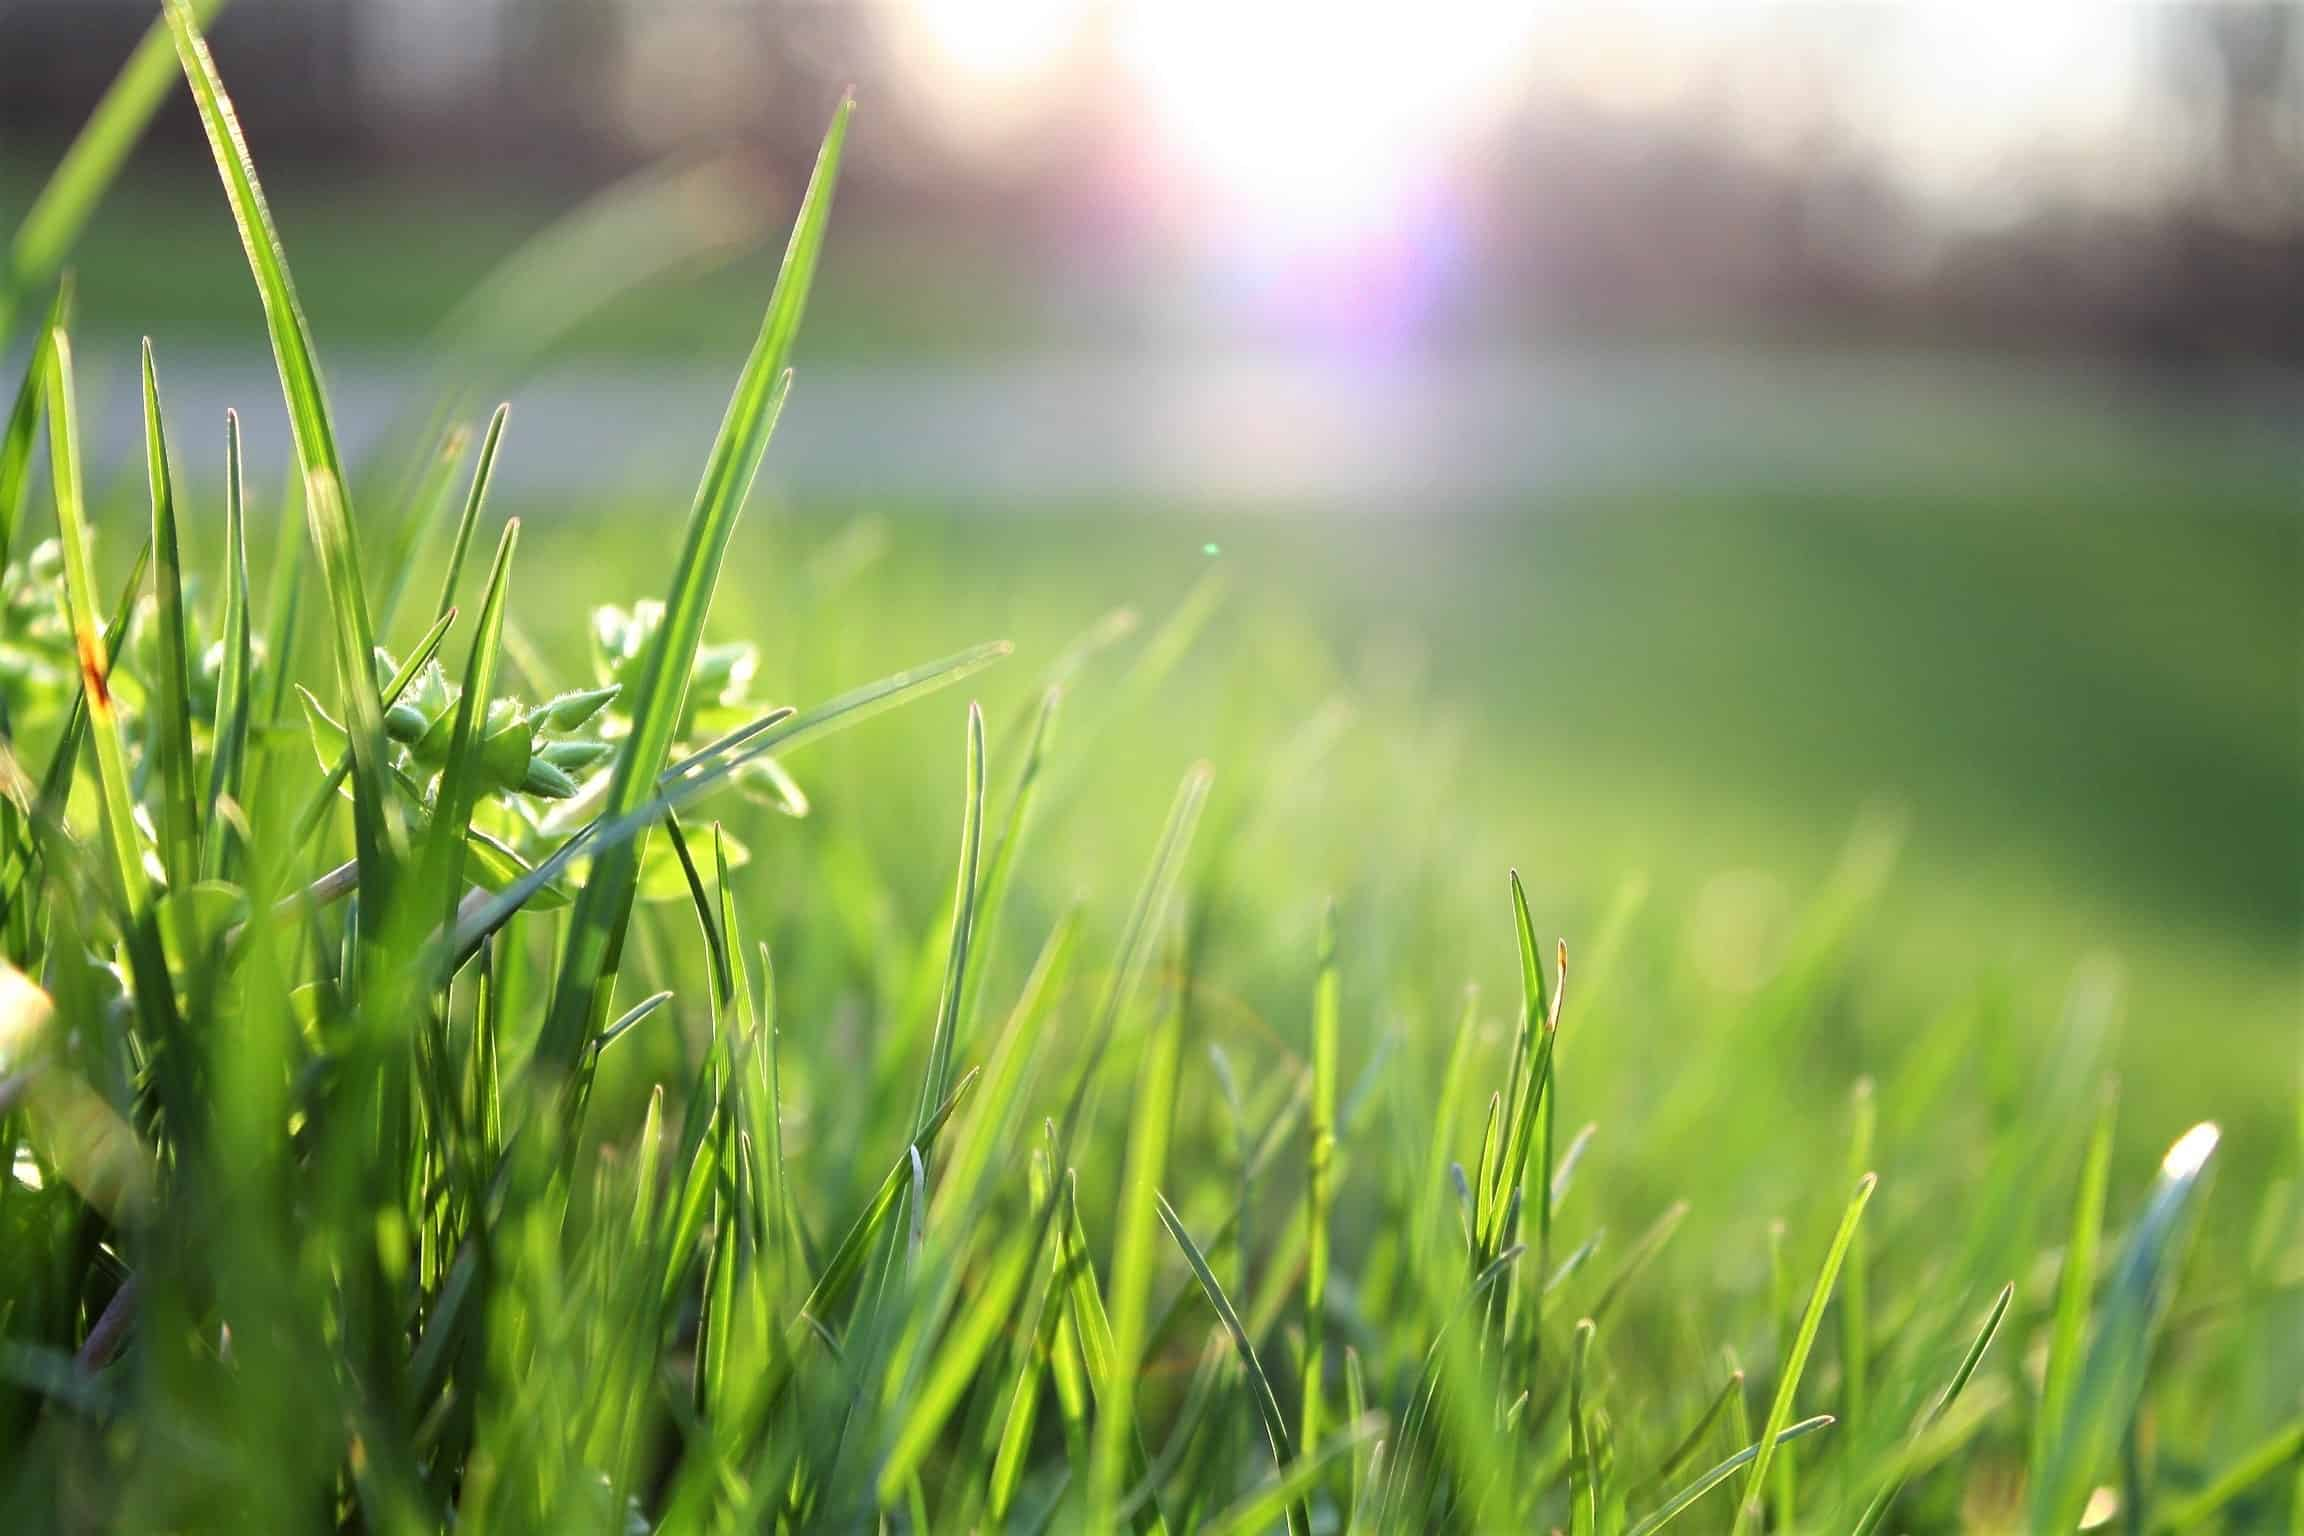 How Organic Matter Creates Sustainable, Carbon-Friendly Agriculture